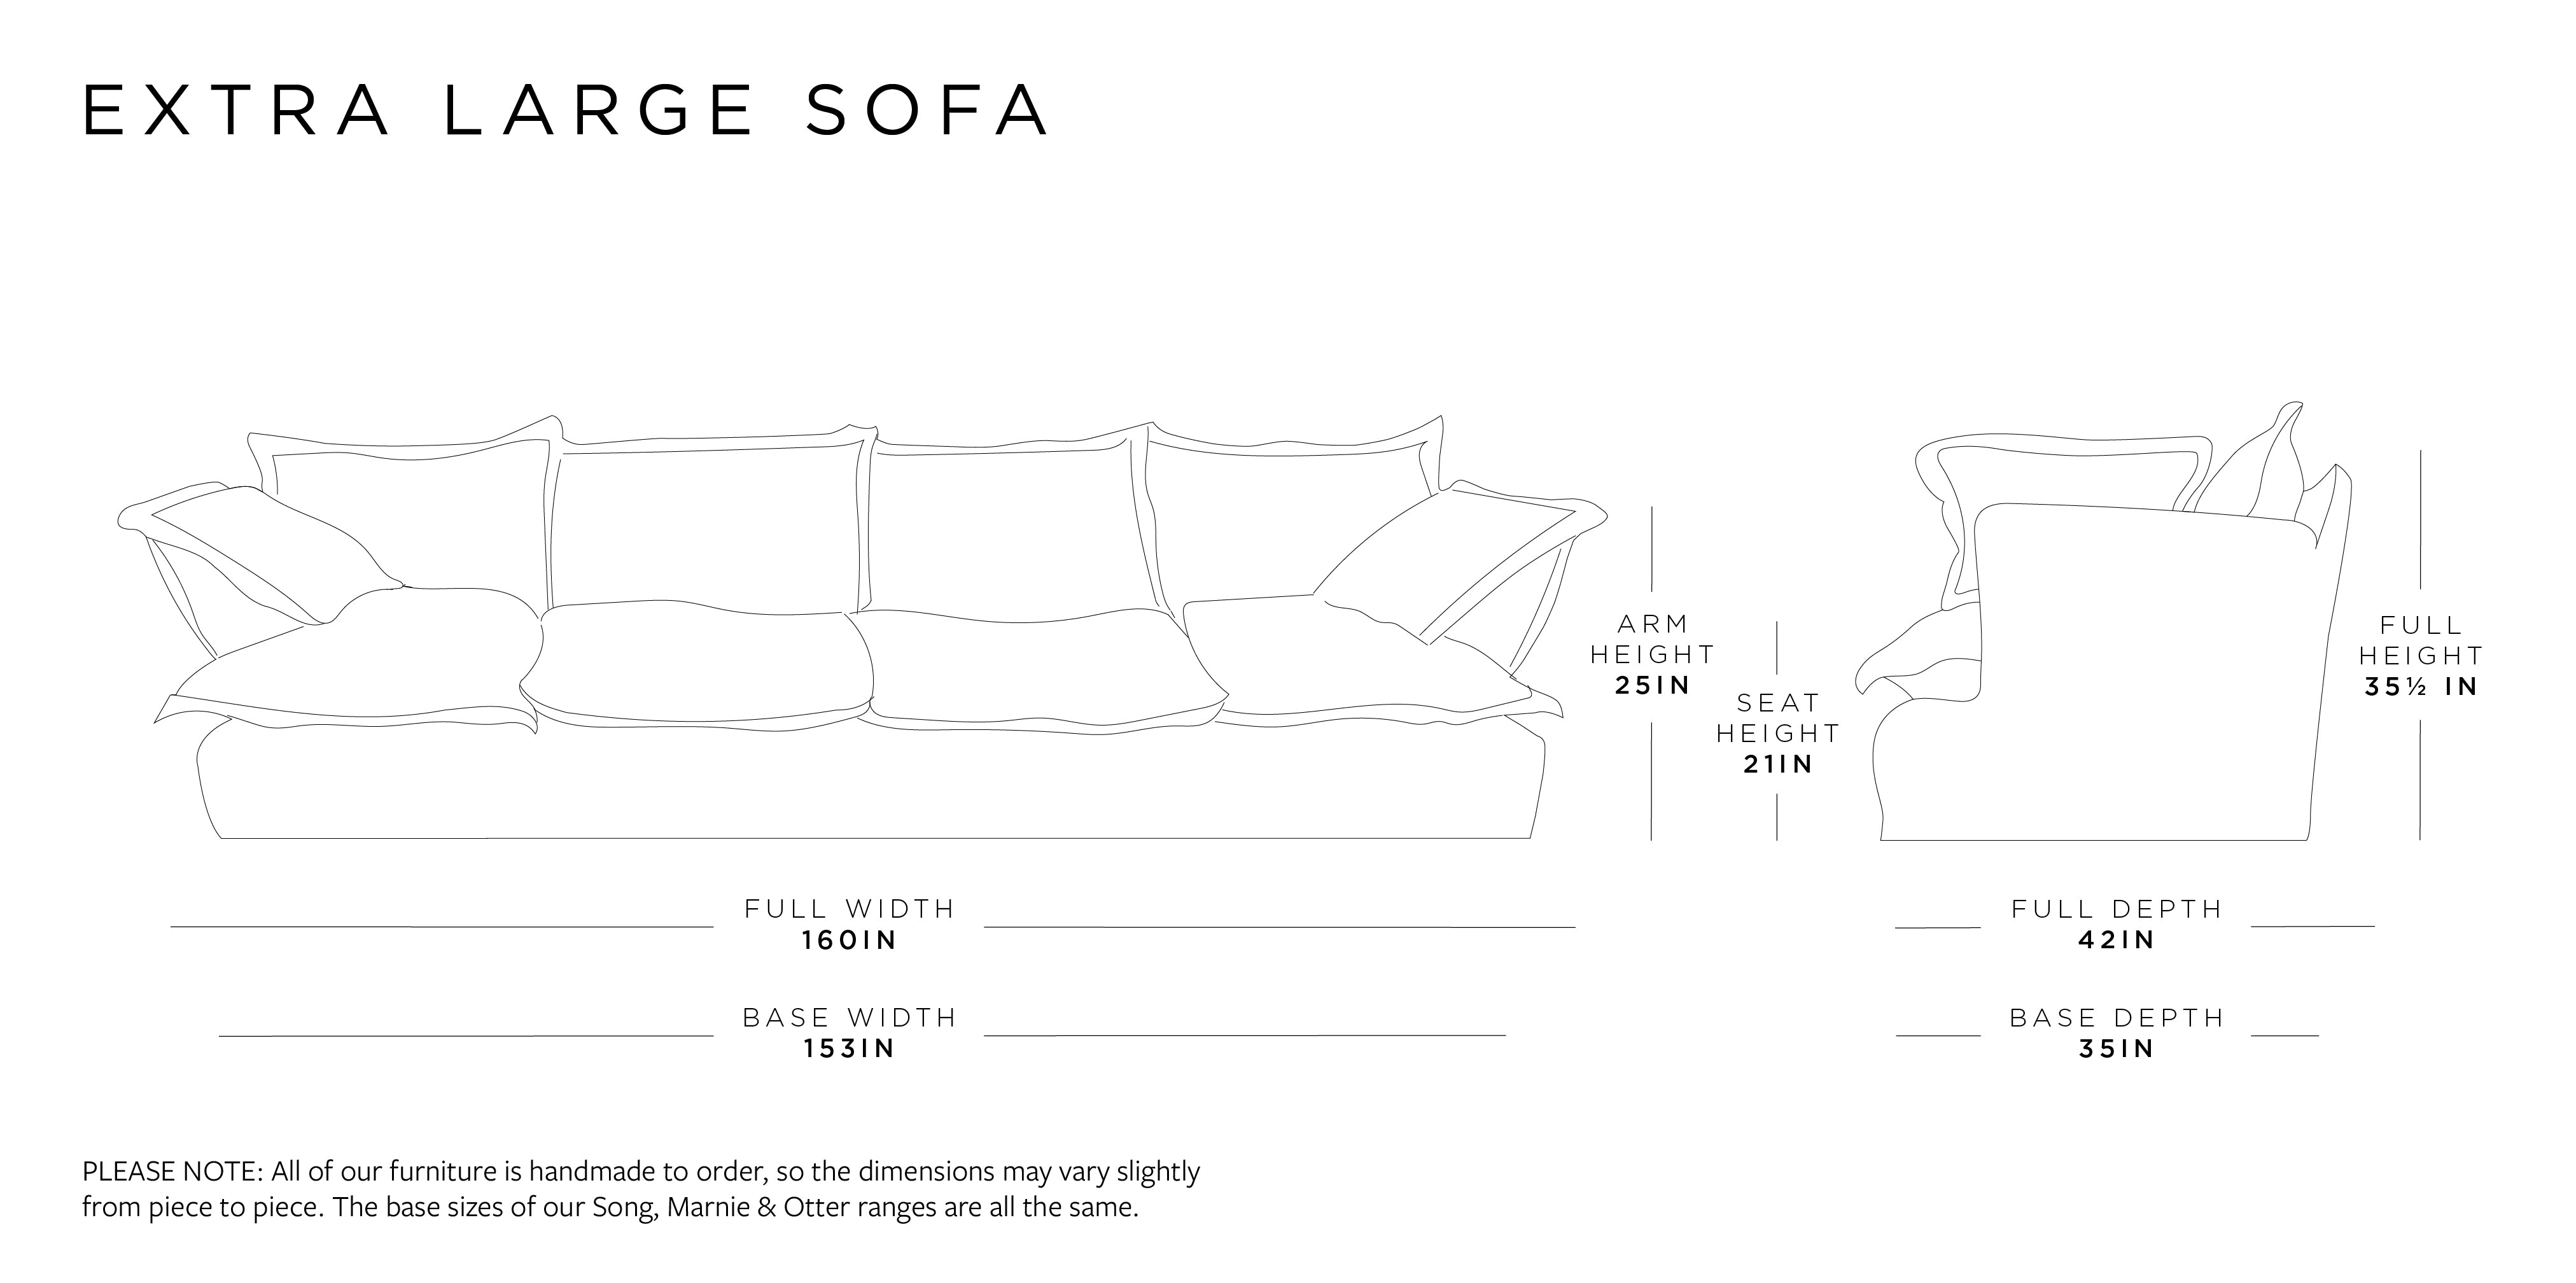 Extra Large Sofa Dimensions